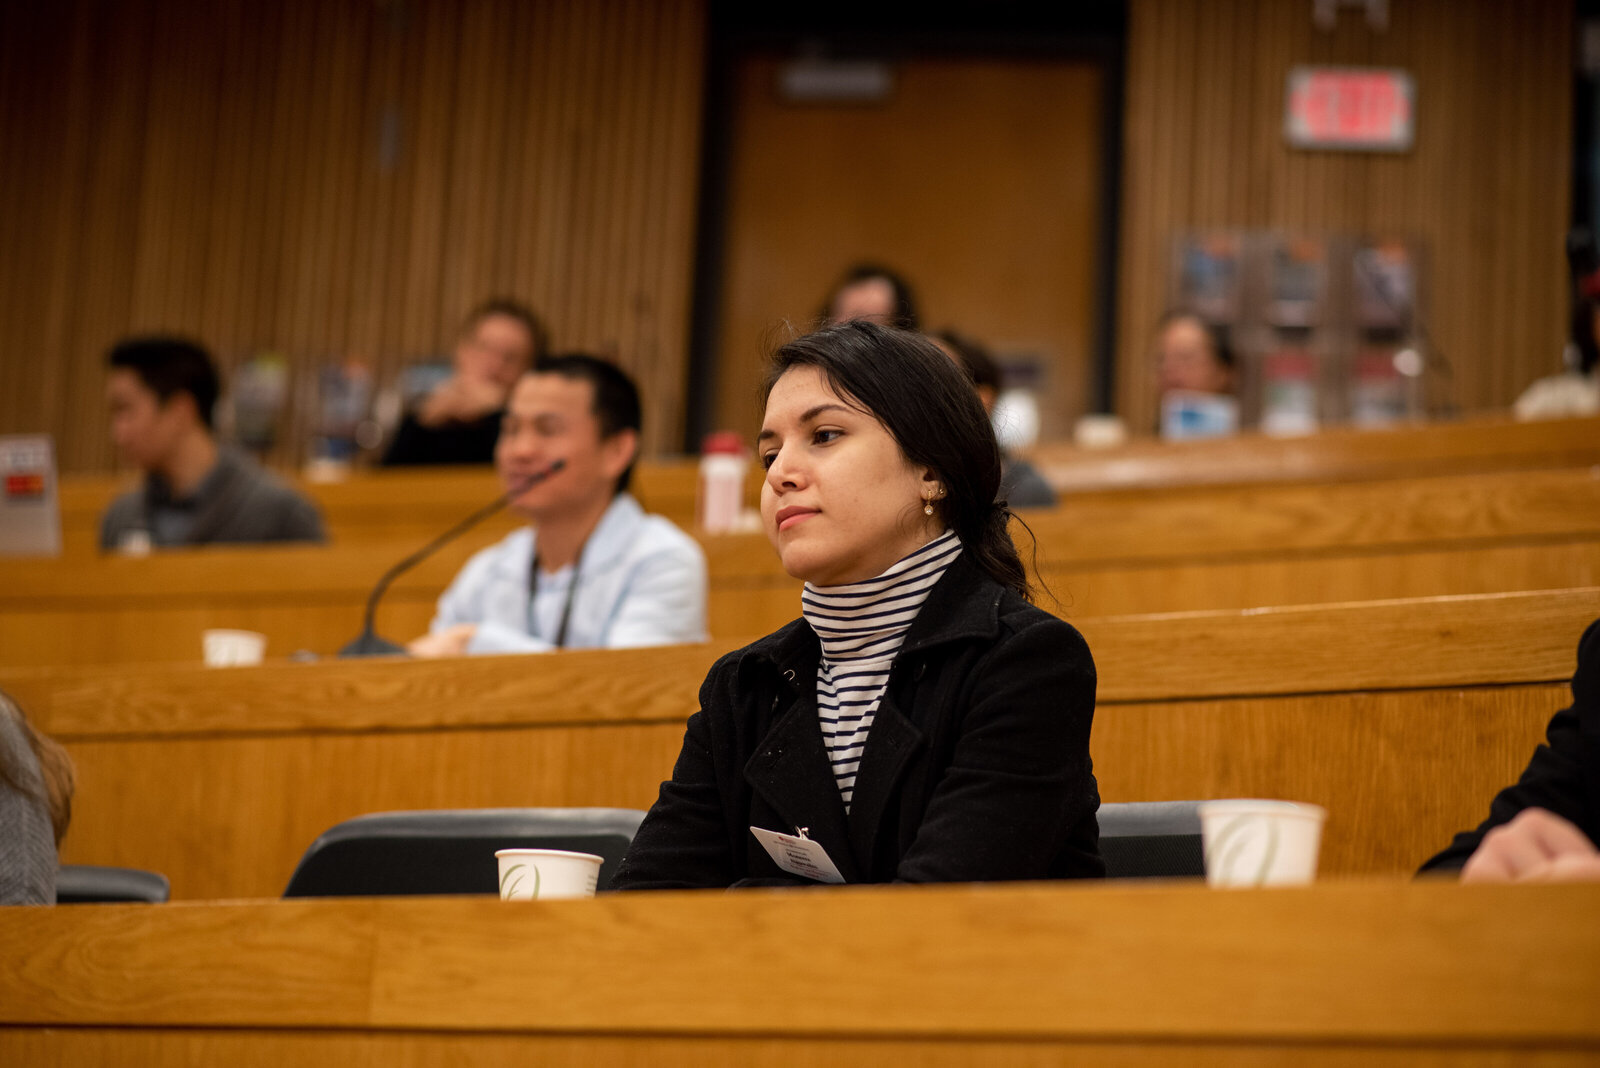 A student at the Harvard T.H. Chan School of Public Health in a lecture hall.